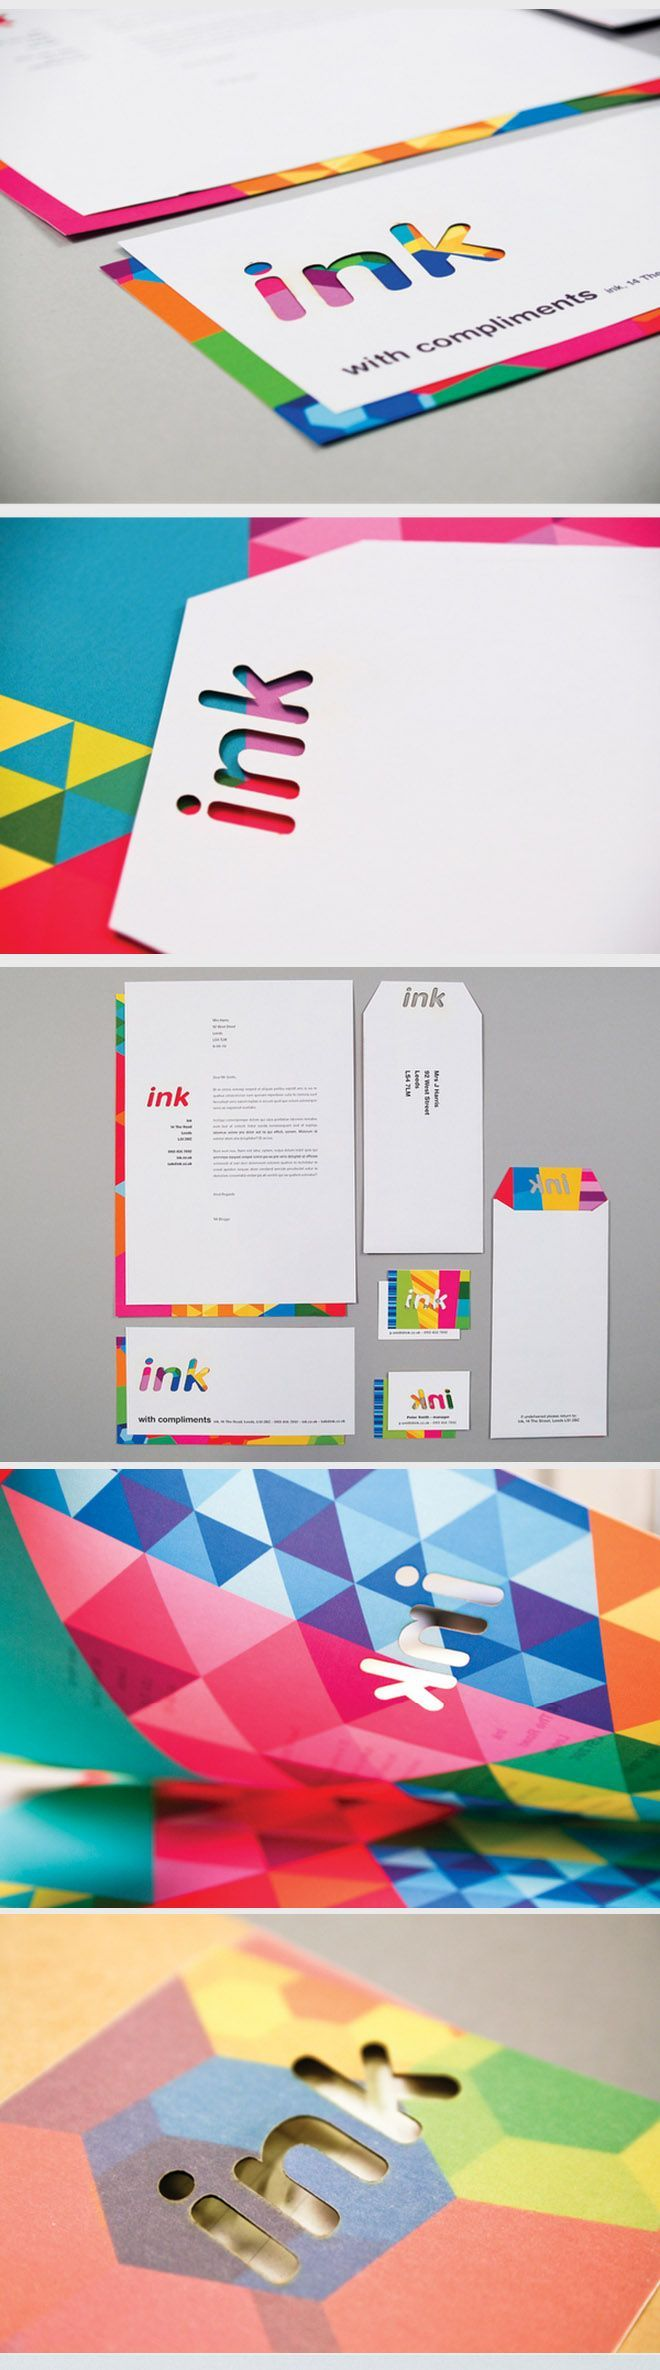 35 Creative and Beautiful Branding Identity Design examples. Follow us www.pinterest.com...